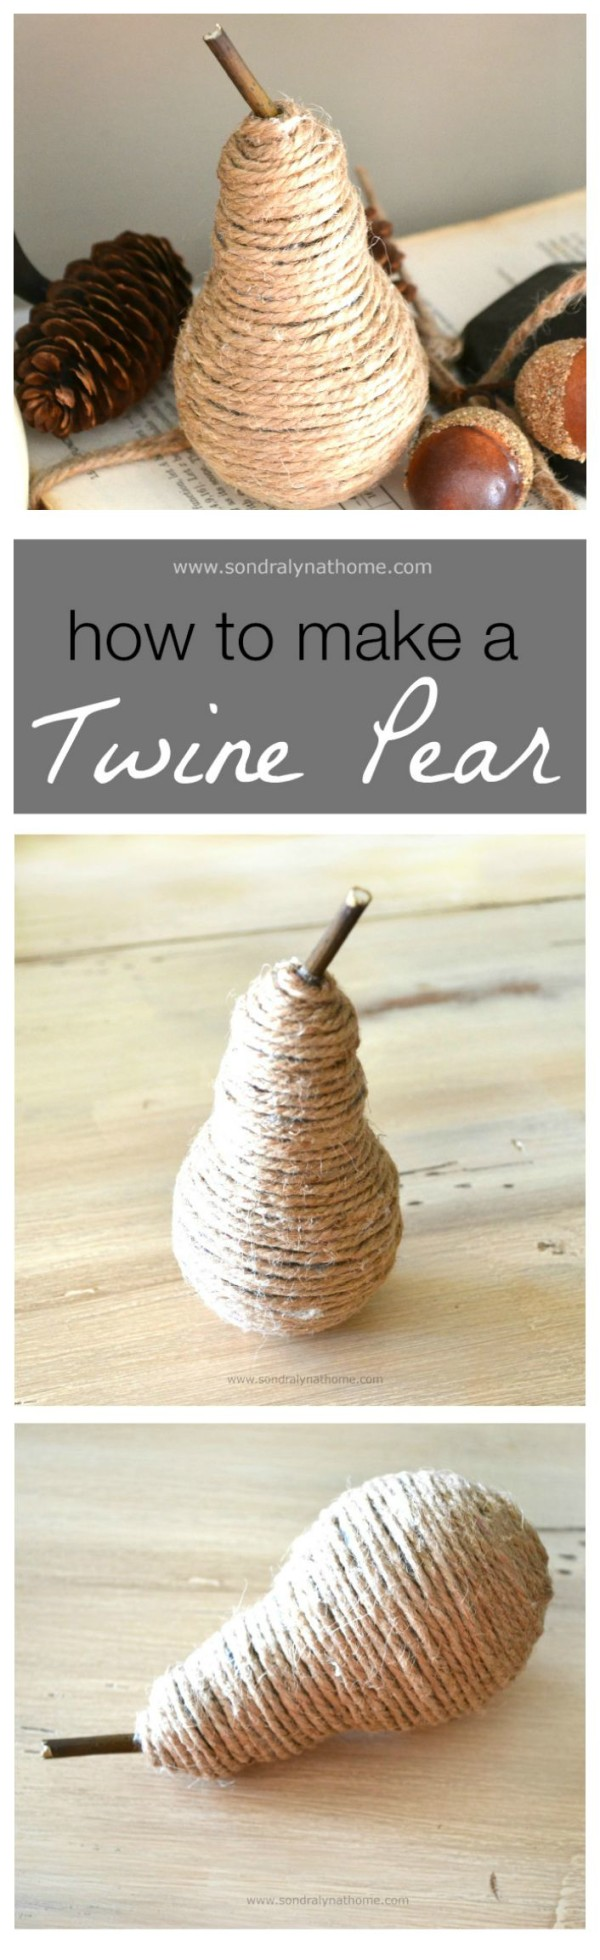 How to Make aTwine Pear - Pinterest- Sondra Lyn at Home